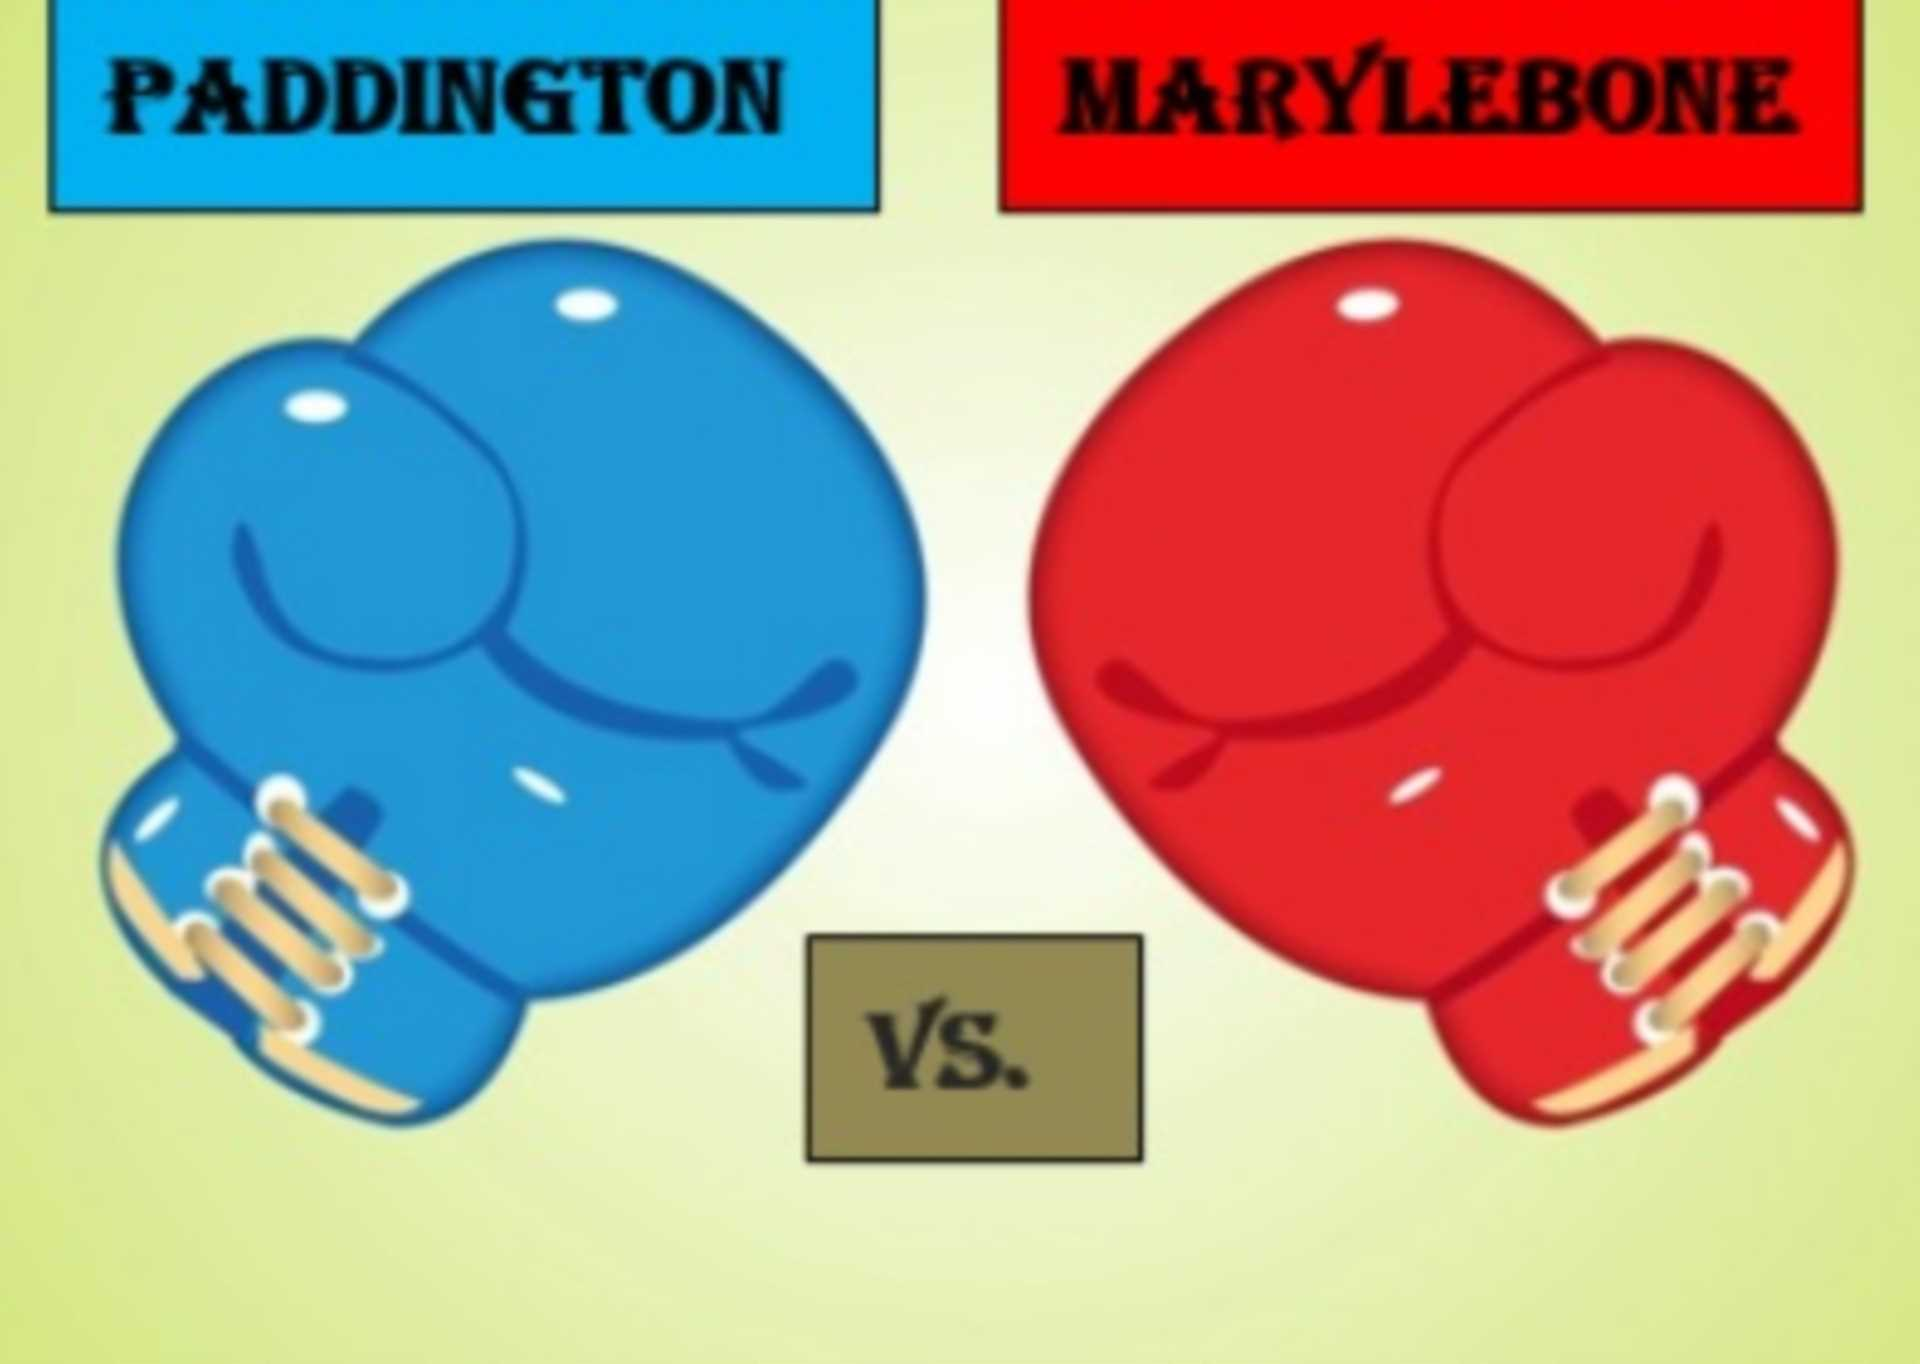 Marylebone the undisputed champion vs. the new challenger Paddington! How does the potential for buy-to-let property investment compare between these two neighbourhoods, which area should we be focussing our time and money on?